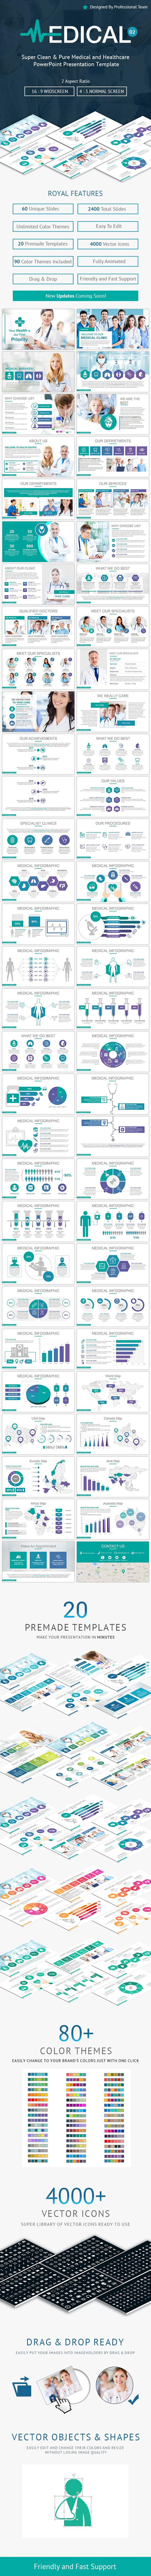 Medical and Healthcare 2 PowerPoint Presentation Template  #pharmacy #human organs • Download ➝ https://graphicriver.net/item/medical-and-healthcare-2-powerpoint-presentation-template/18381669?ref=pxcr